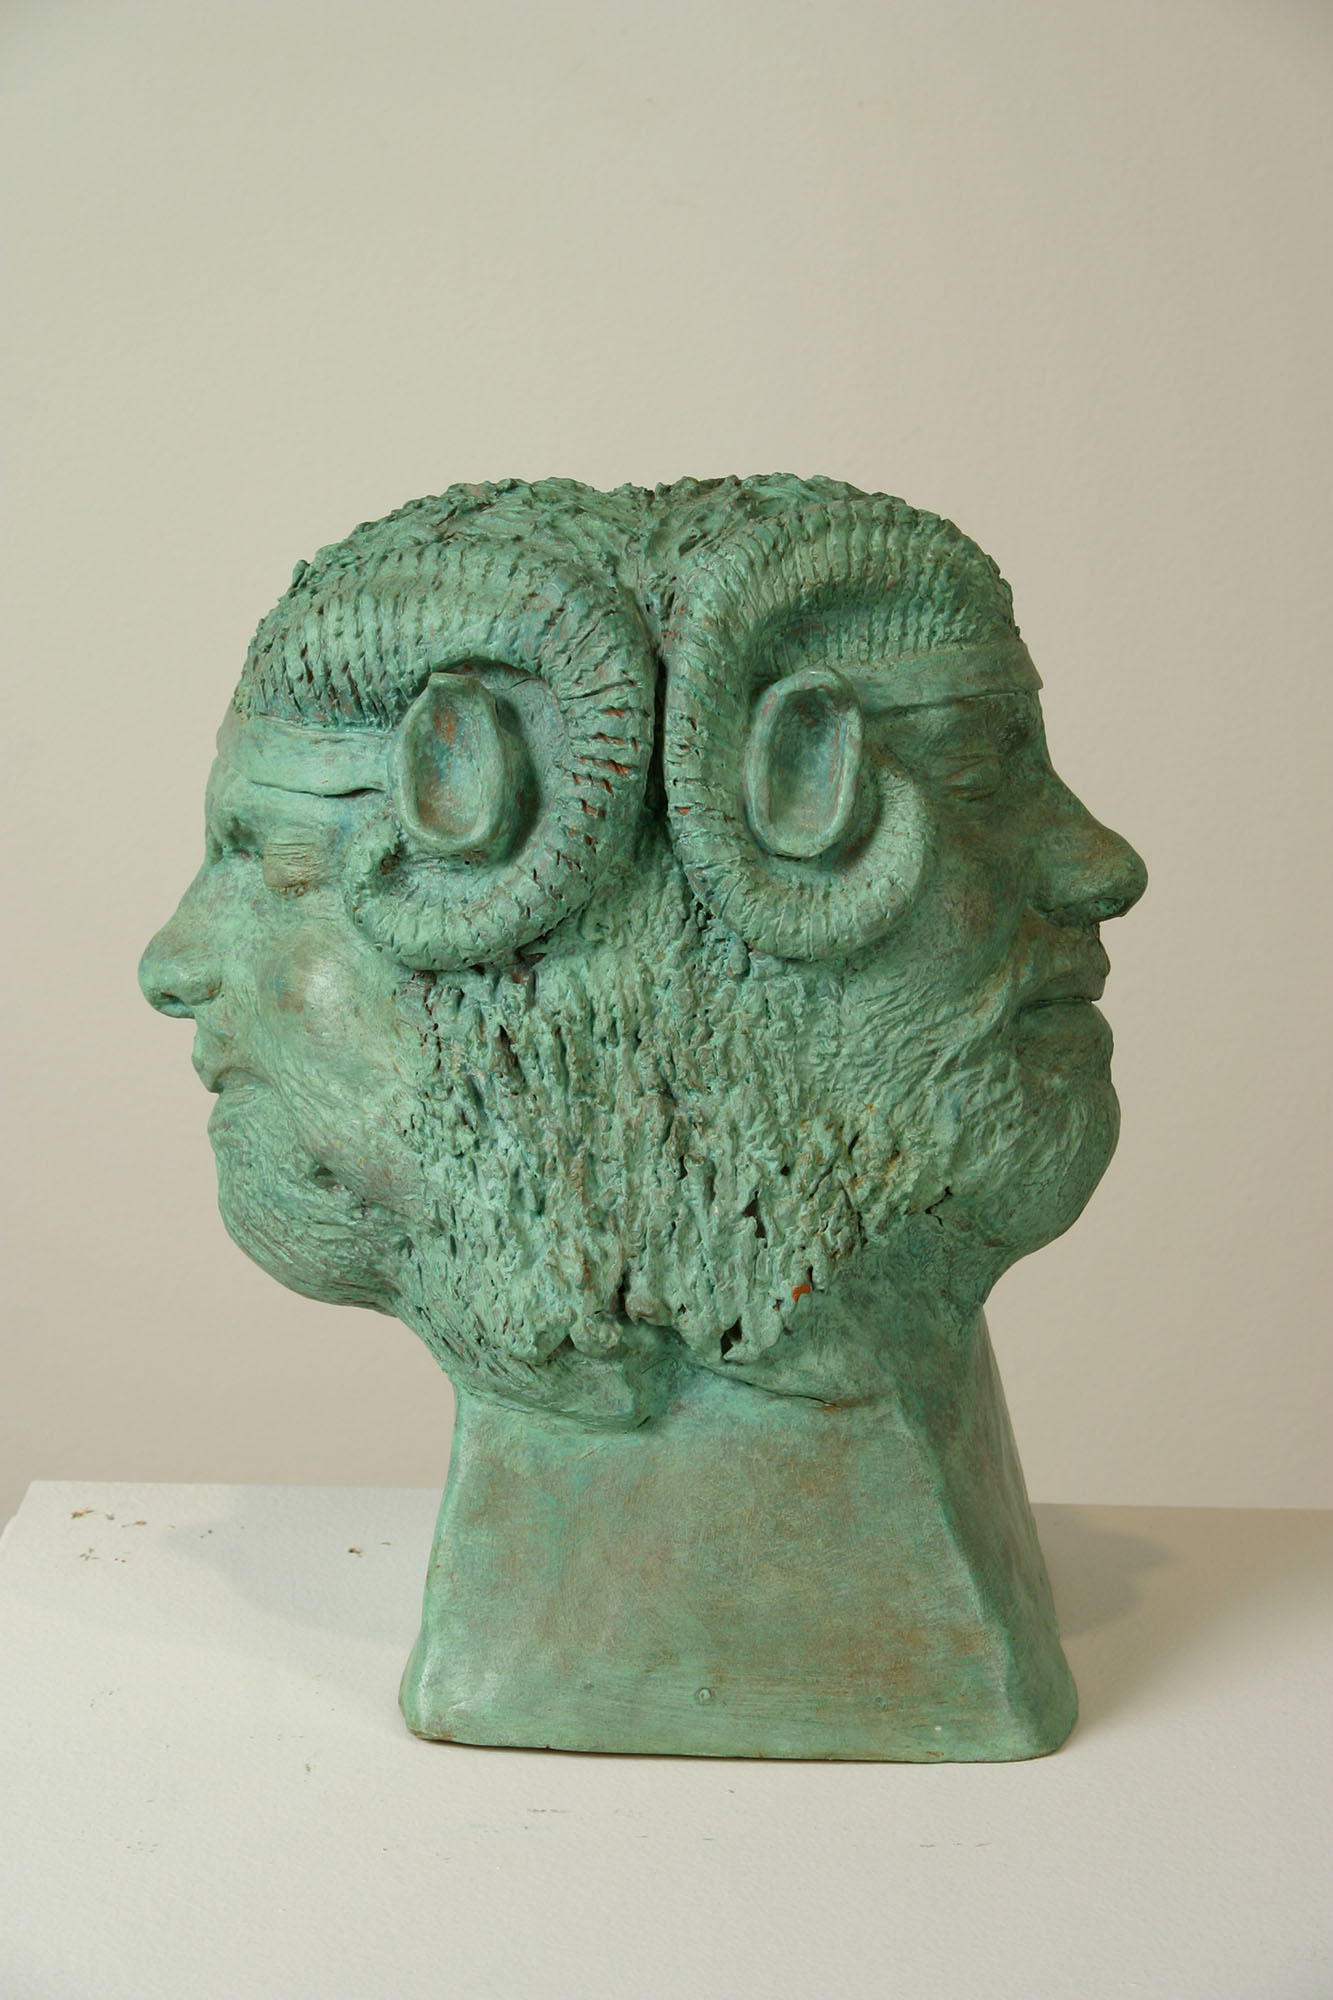 William Iaculla, Janus, 1973. Terra-cotta with bronze patina. Courtesy of the artist.